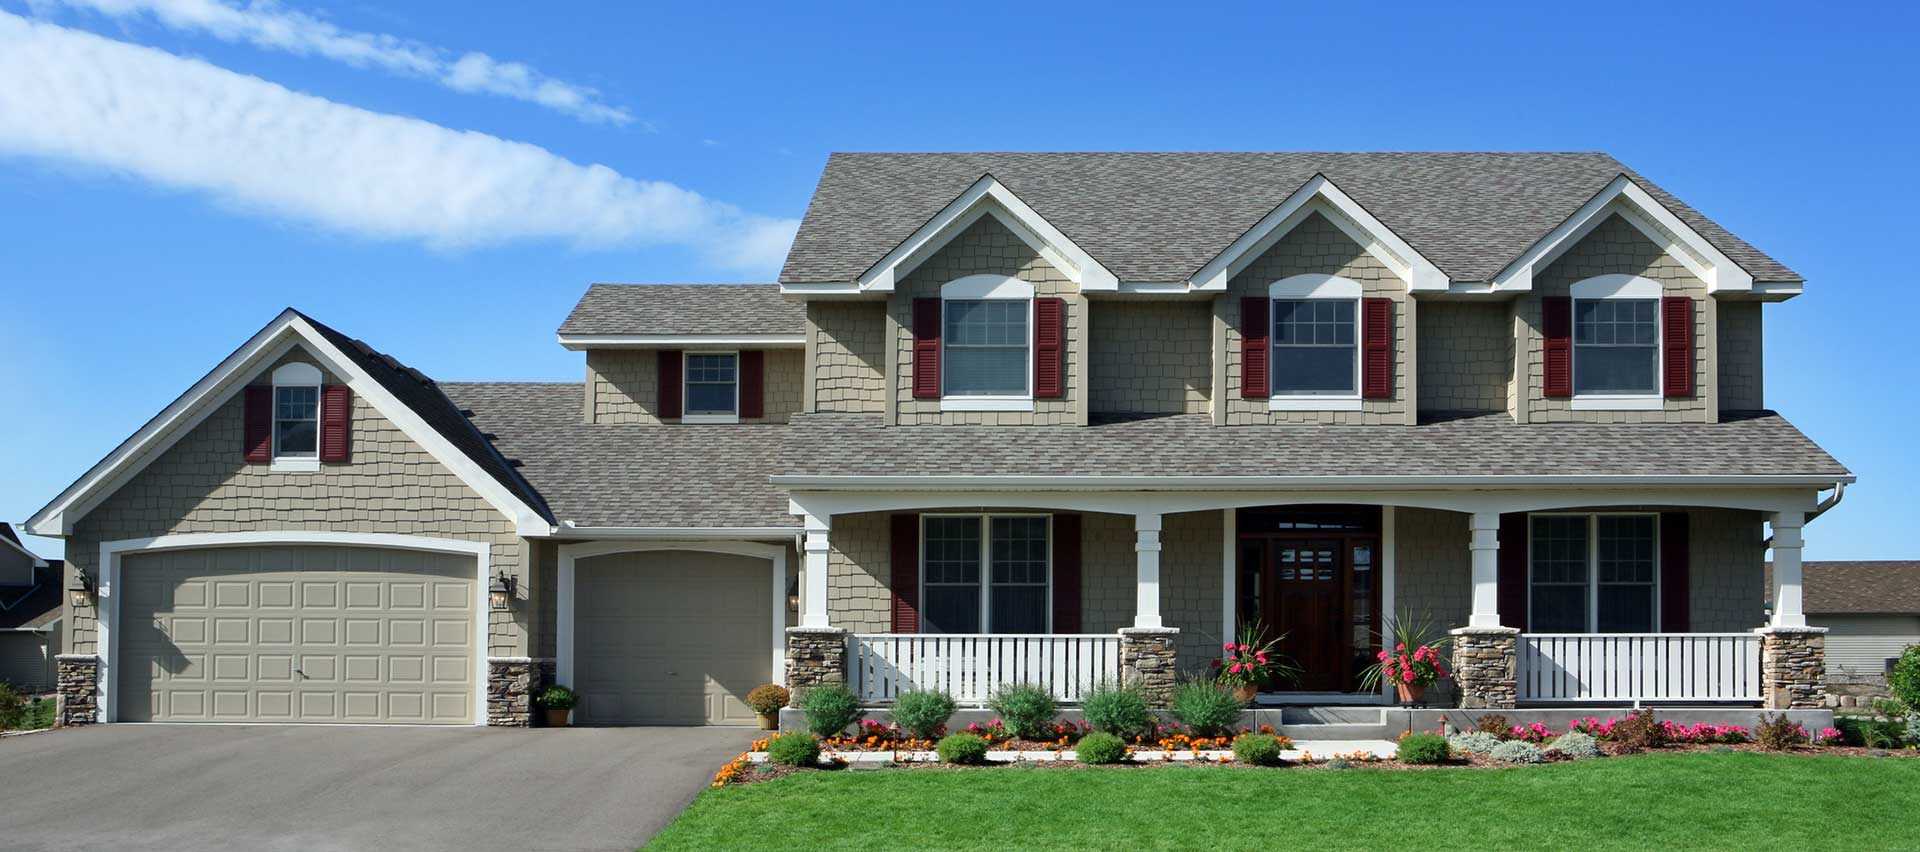 Roofing Company Jacksonville, FL